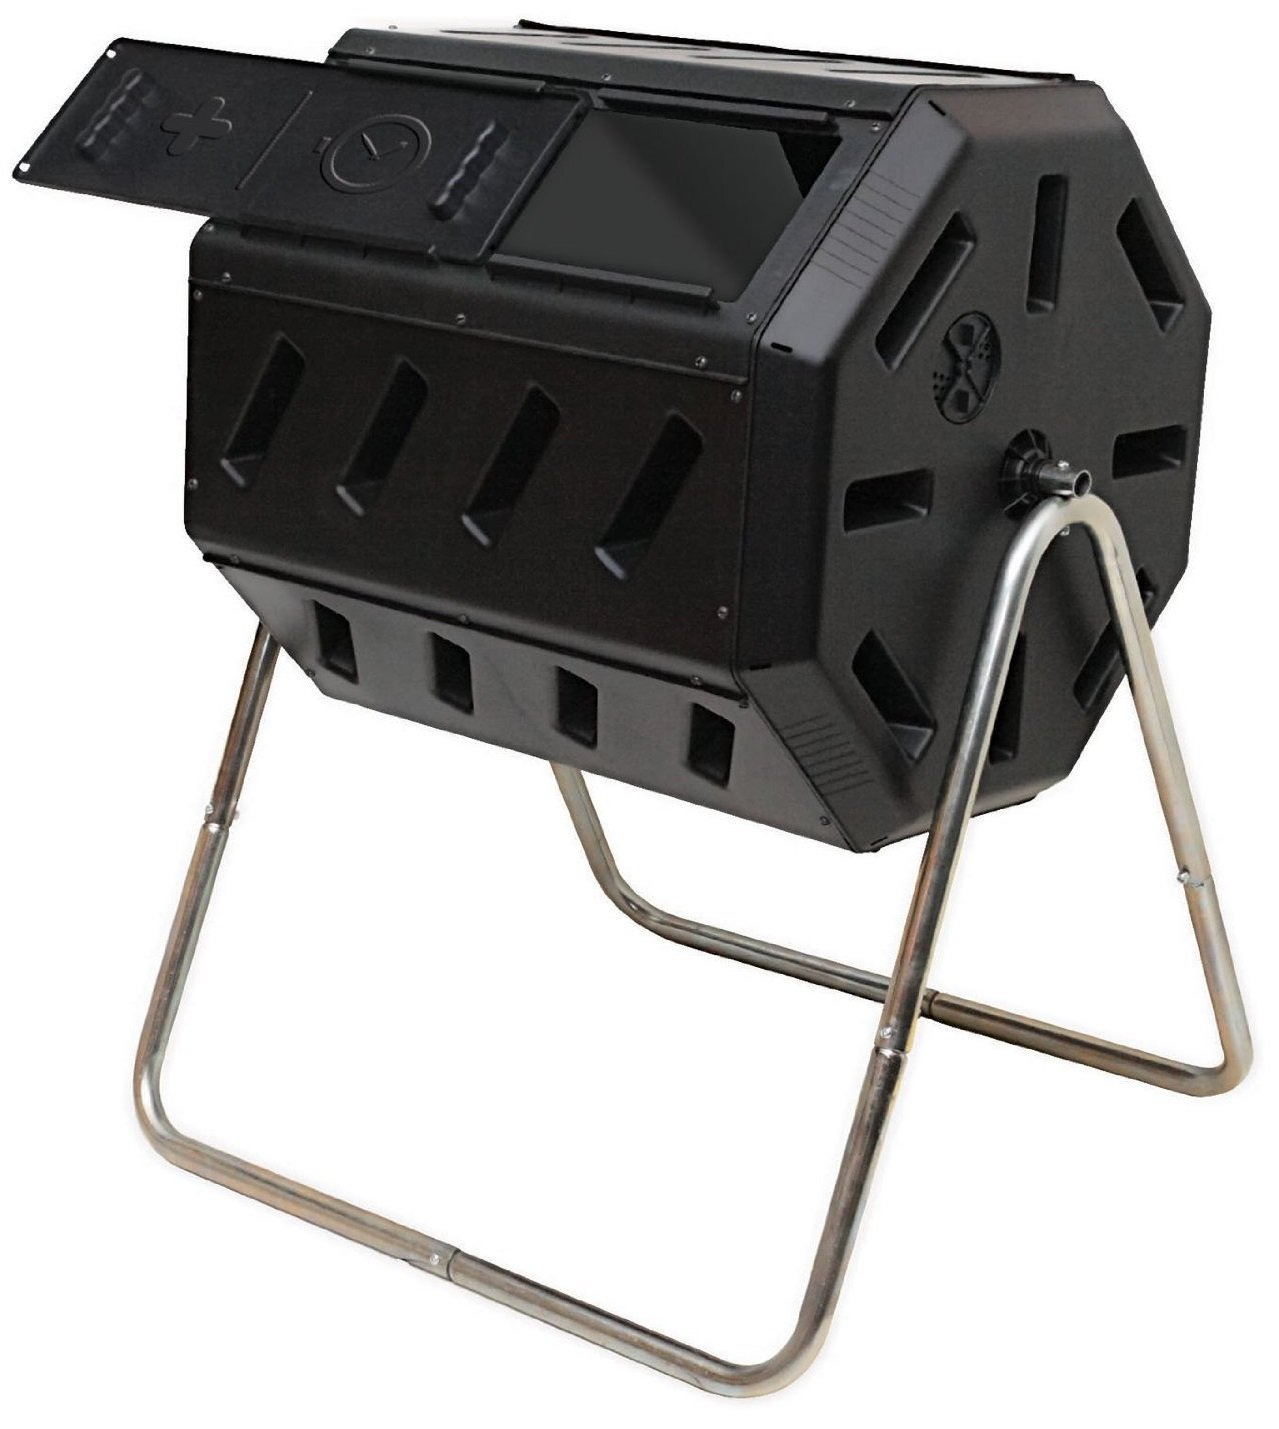 FCMP Outdoor Tumbling Composter in black color